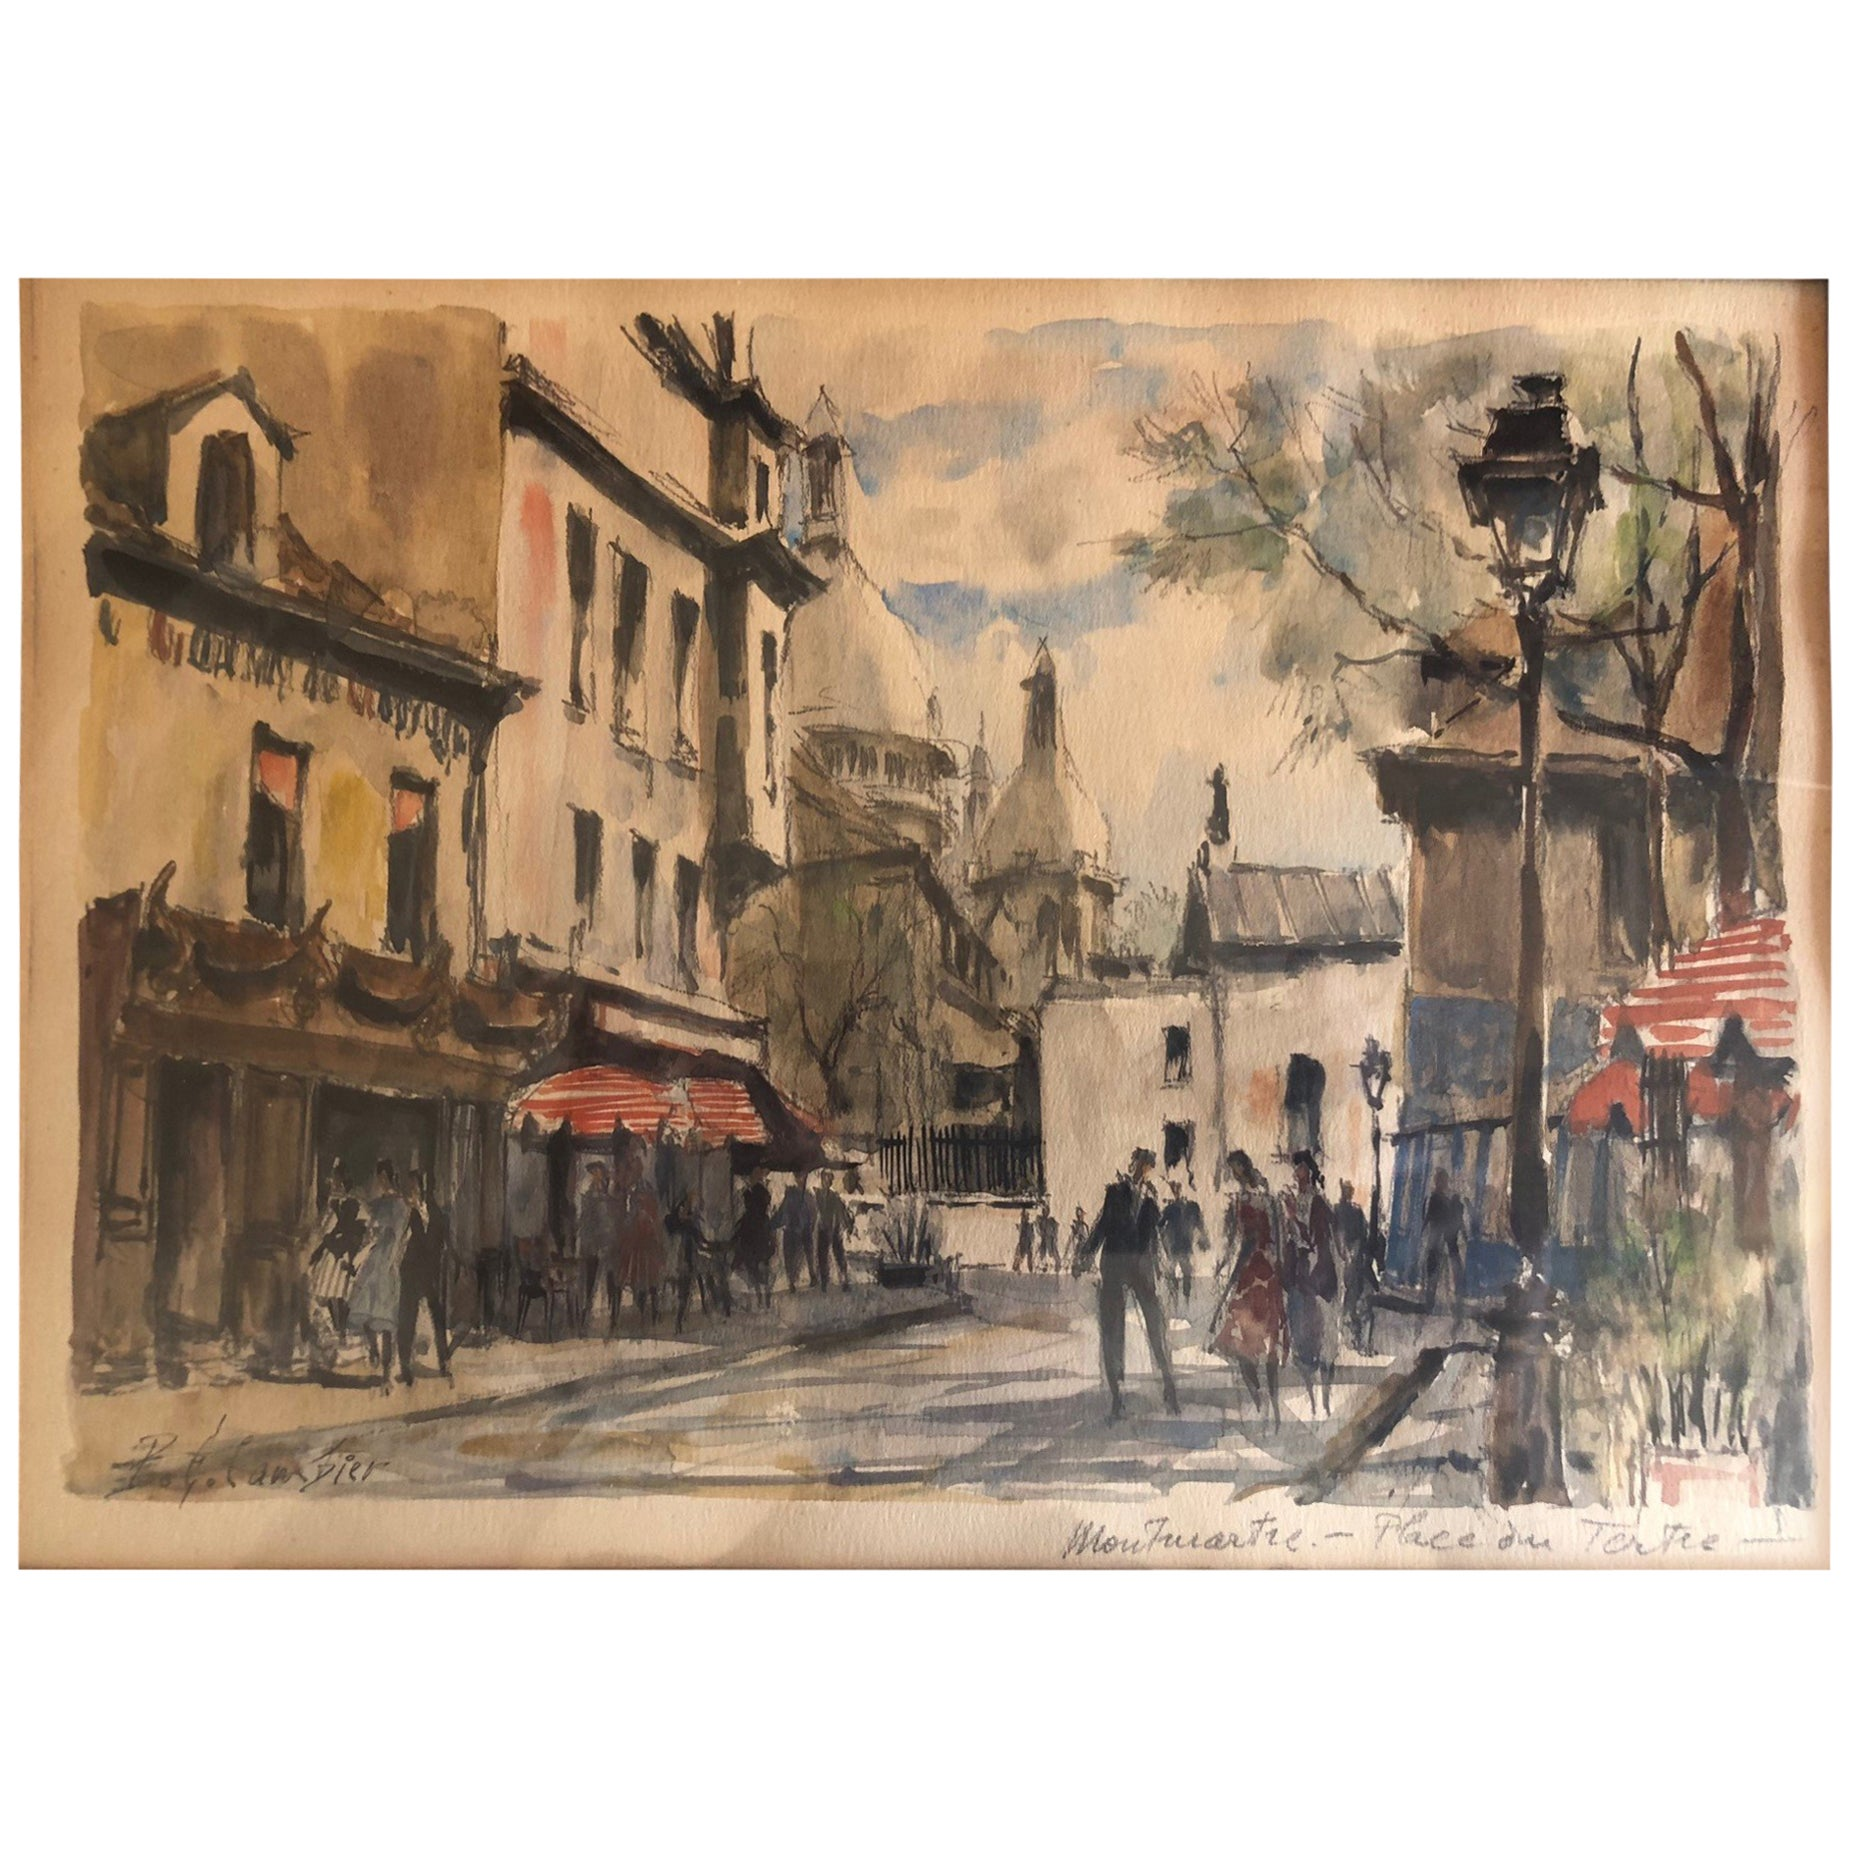 Paris street scene watercolor by pierre eugene cambier for sale at 1stdibs